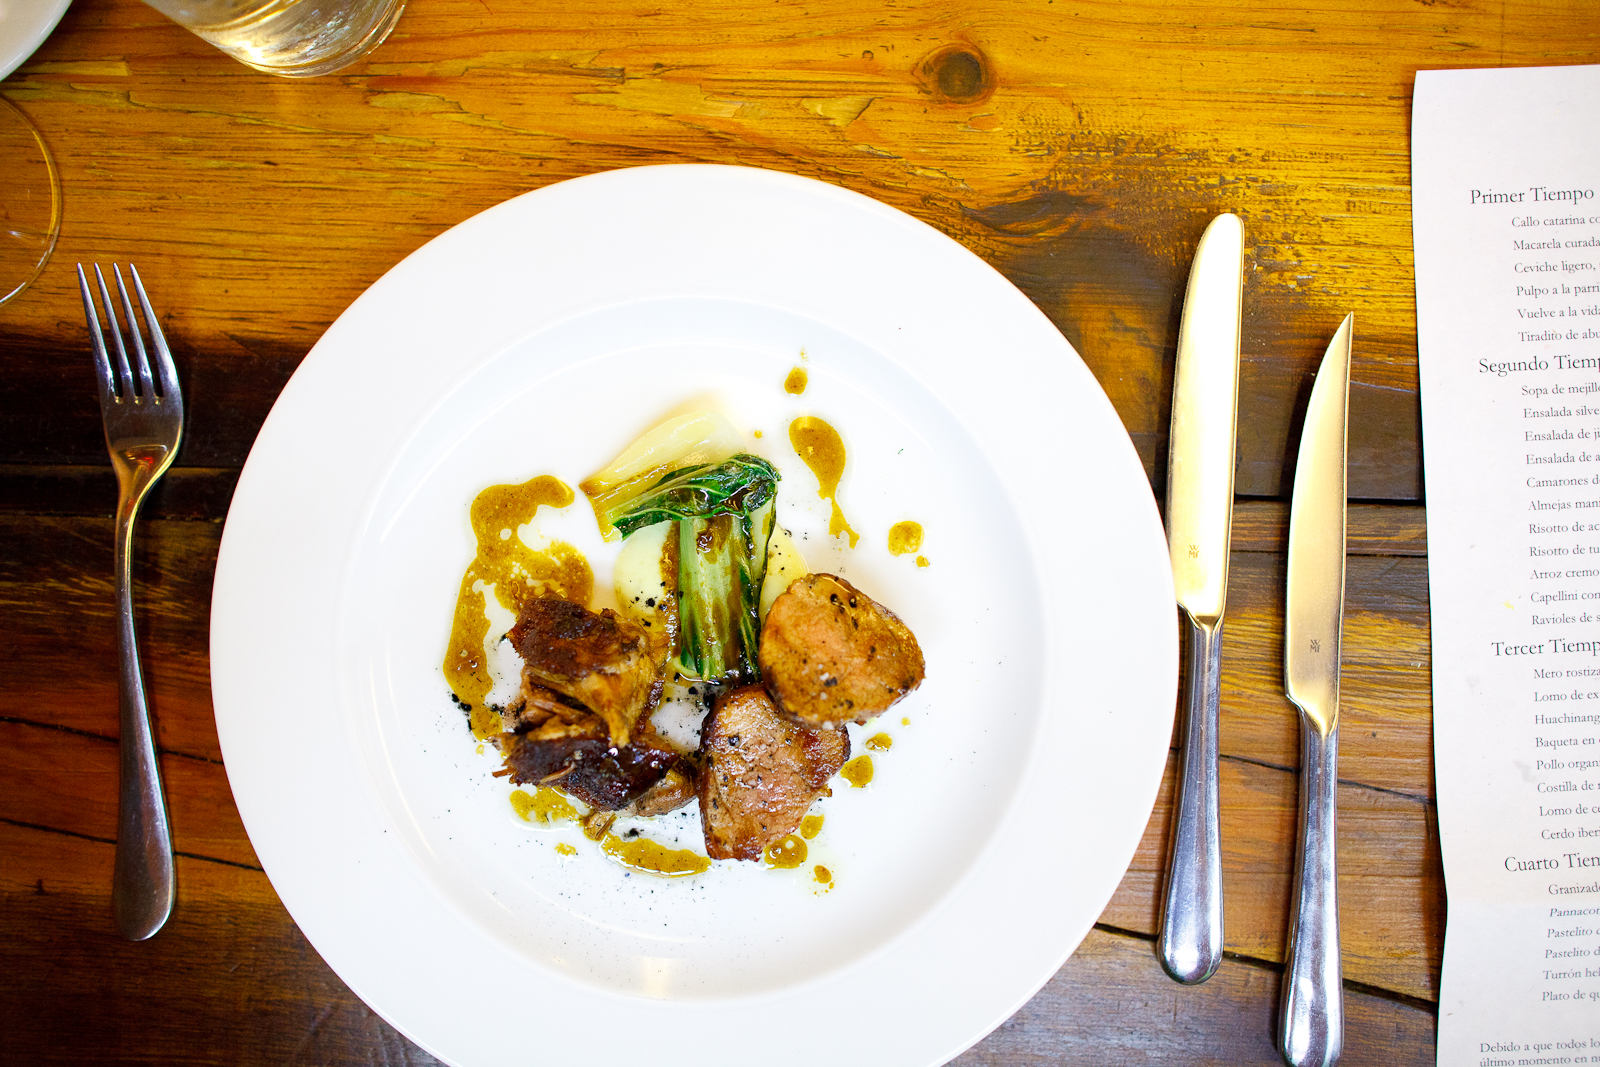 Iberico pork loin with chayote purée and bok choy